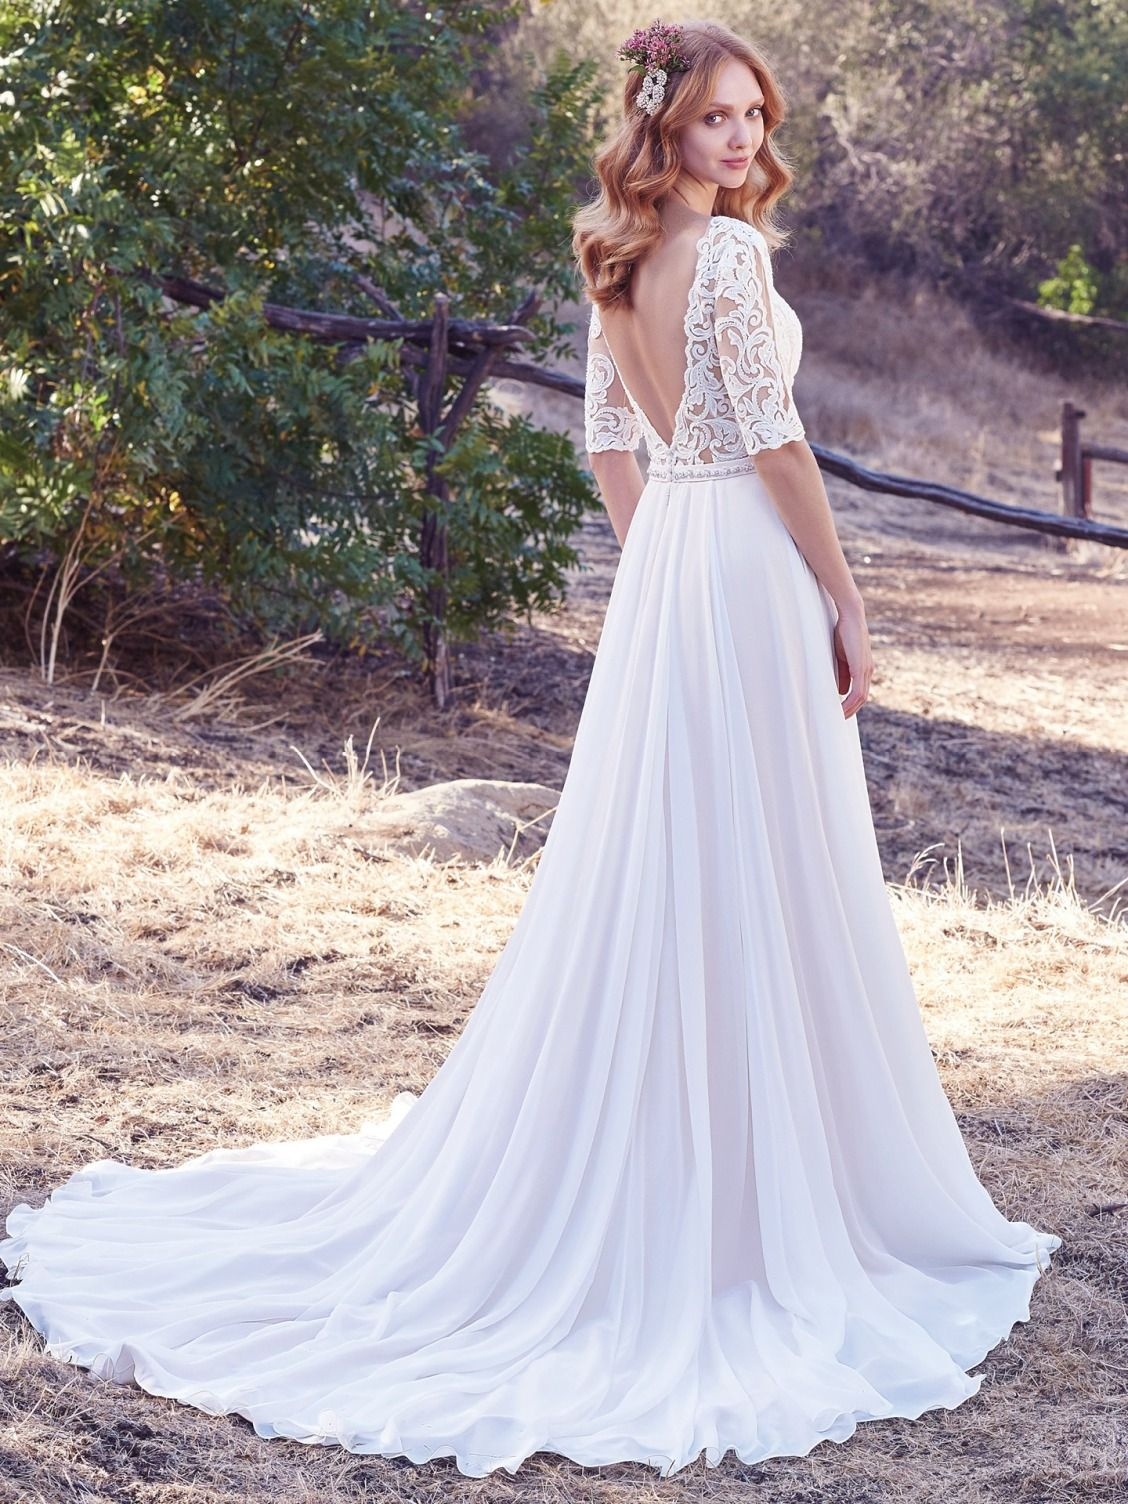 Maggie Sottero Darcy This Aurora Chiffon A Line Wedding Dress Features Lace Bodice With Illusion Elbow Sleeves And Bateau Neckline Accented In